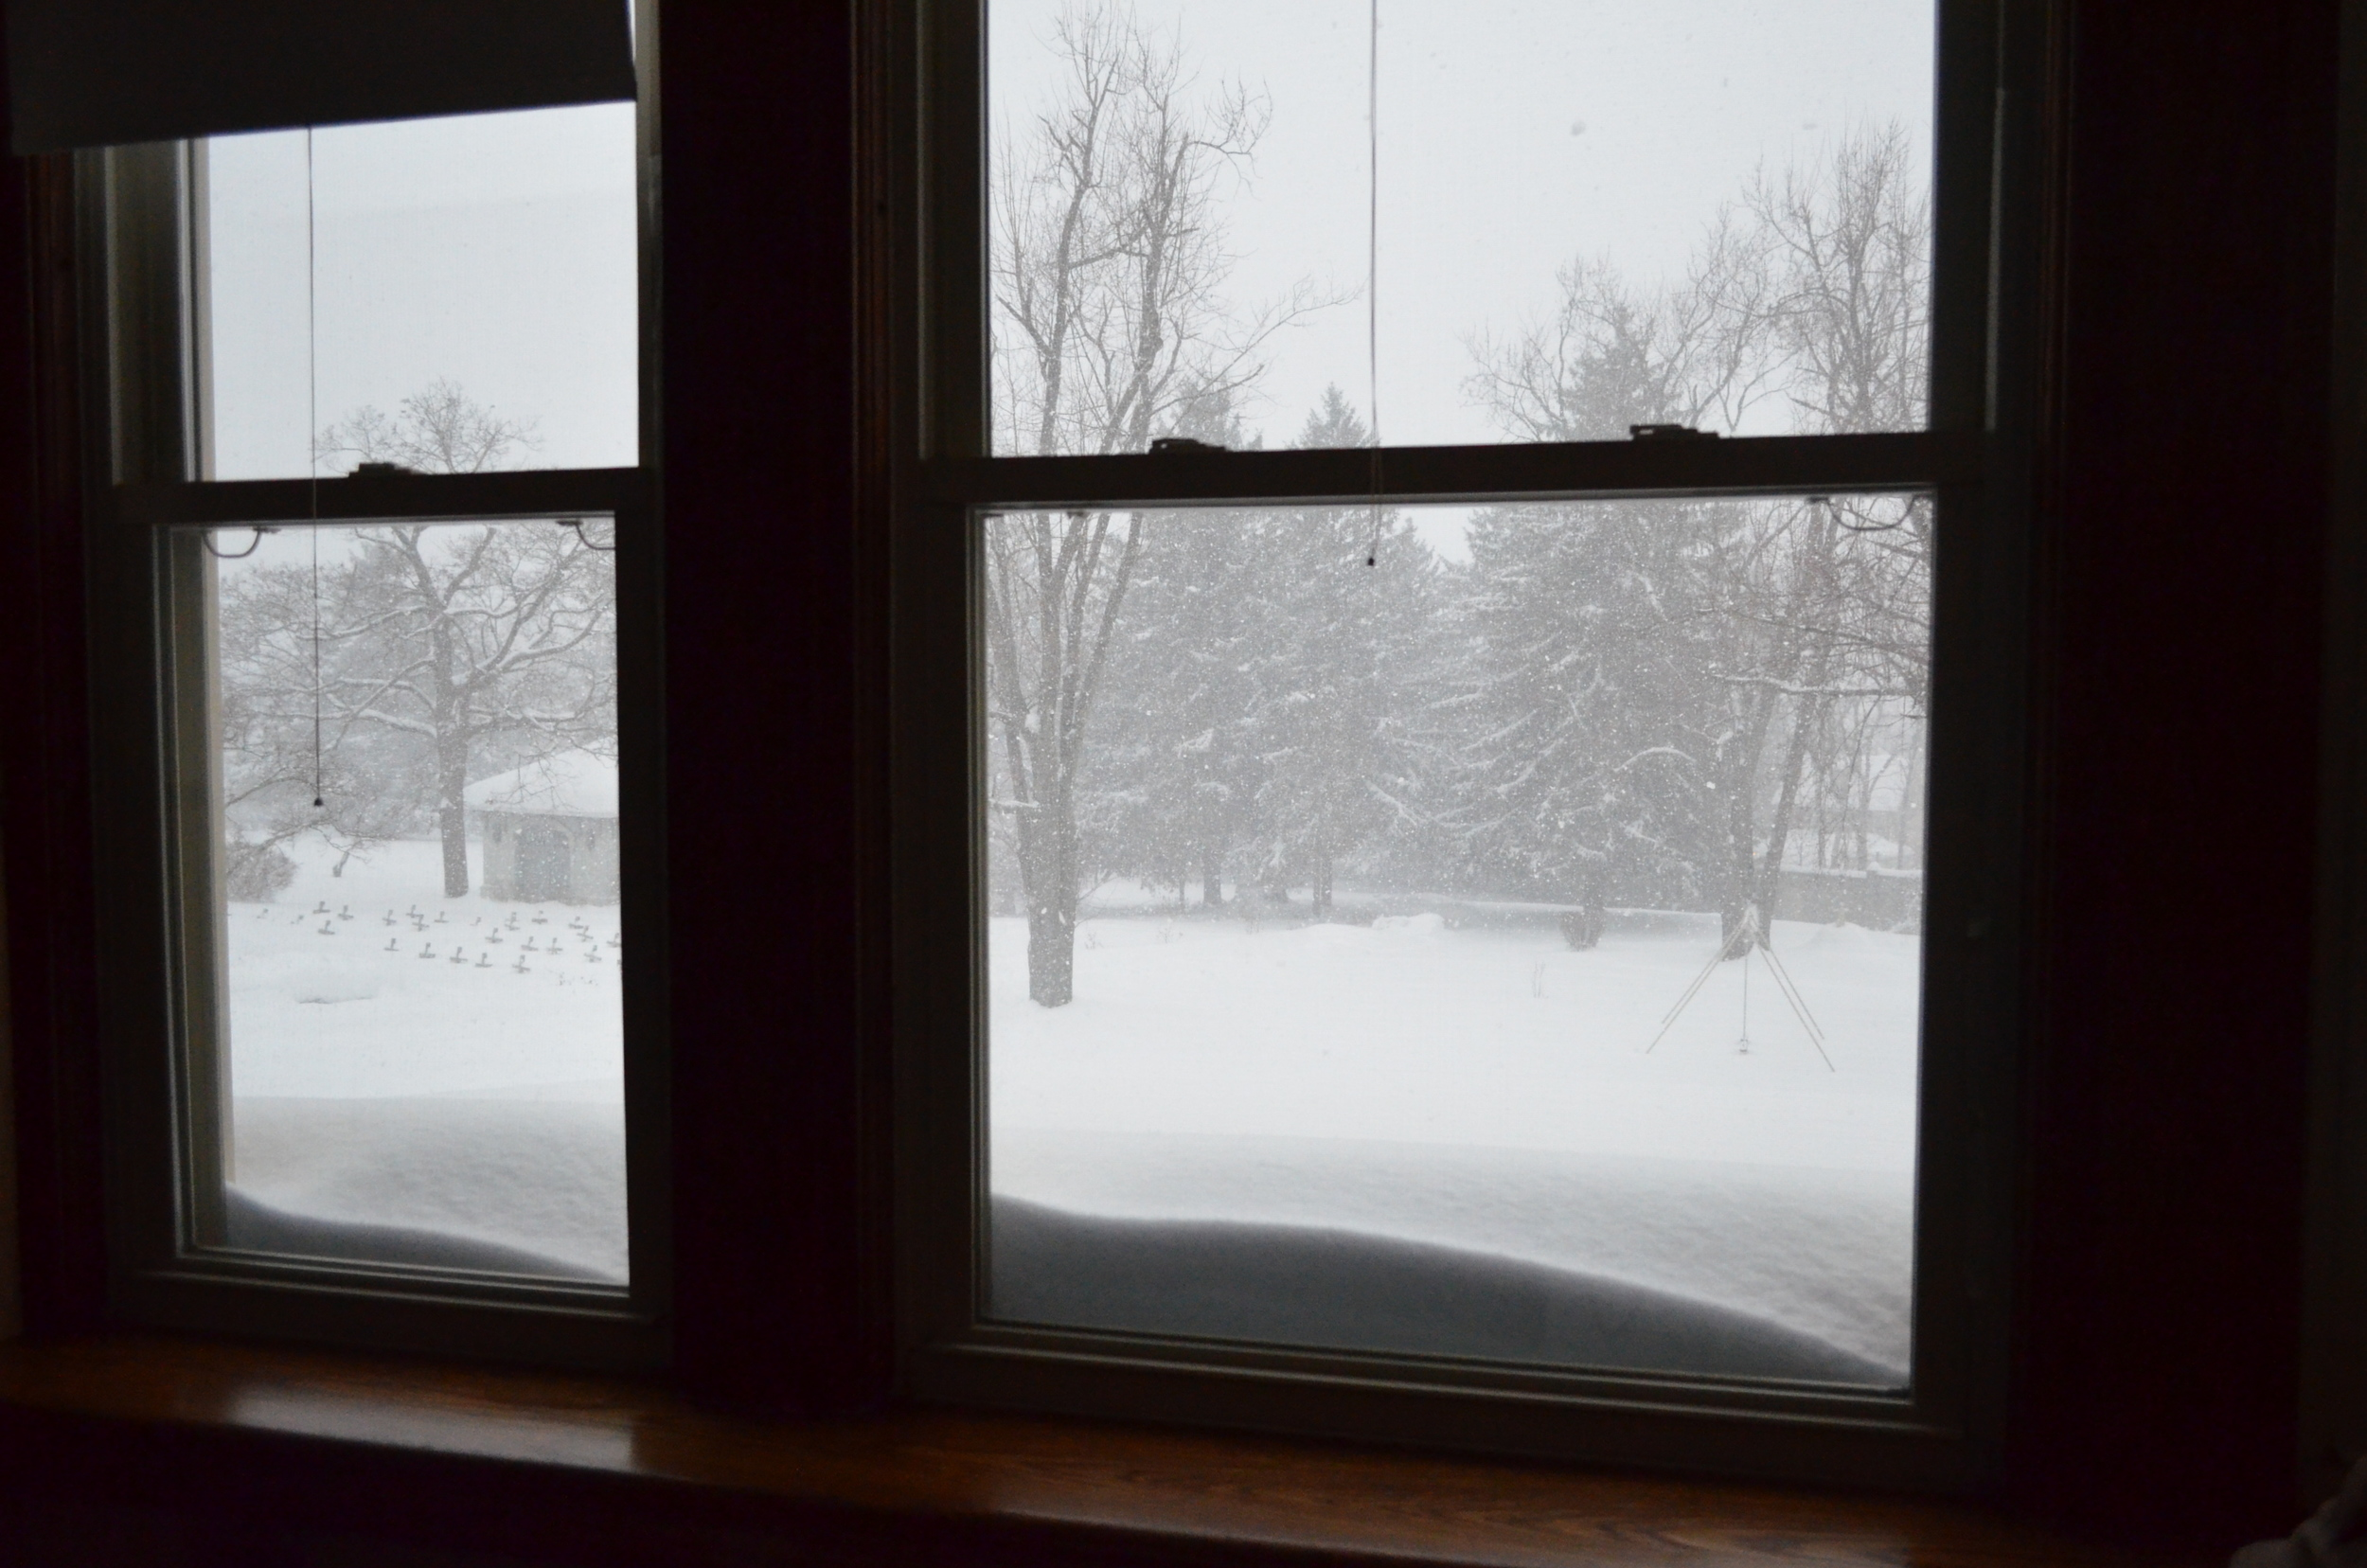 The lower roof is actually about a foot lower than these windows, but the snow is piling up!